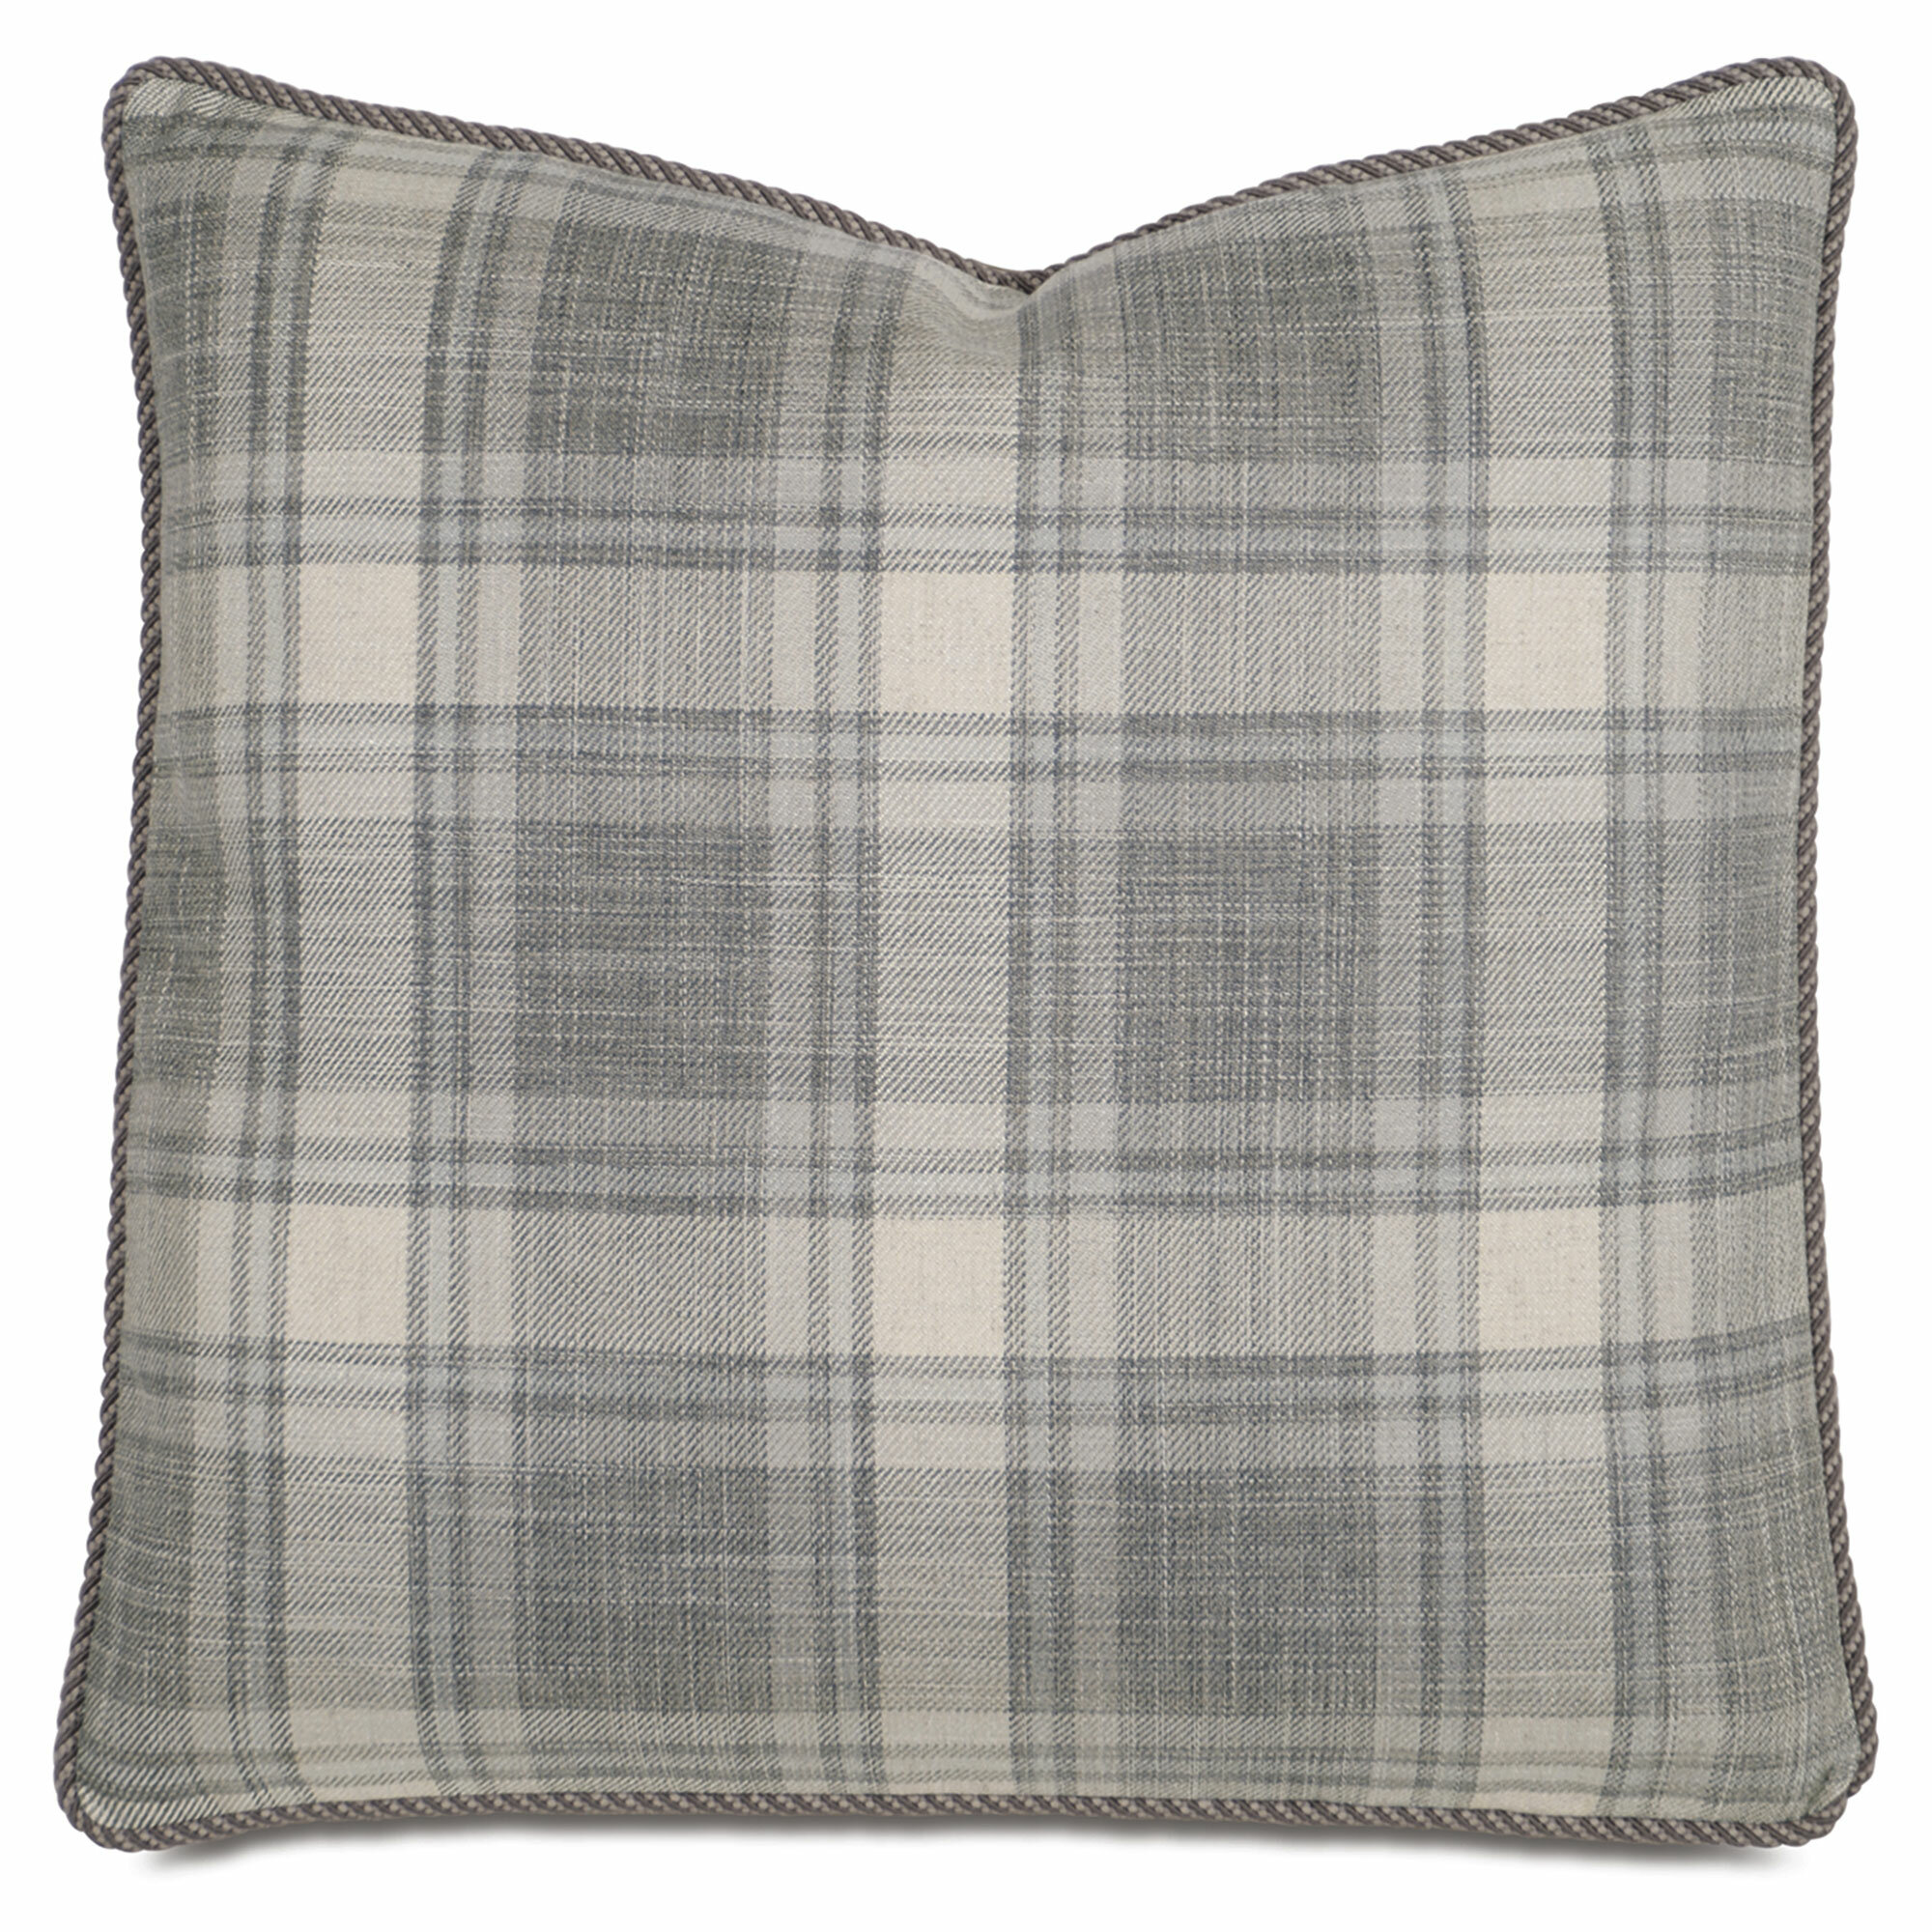 Eastern Accents Barclay Butera Square Pillow Cover Insert Wayfair